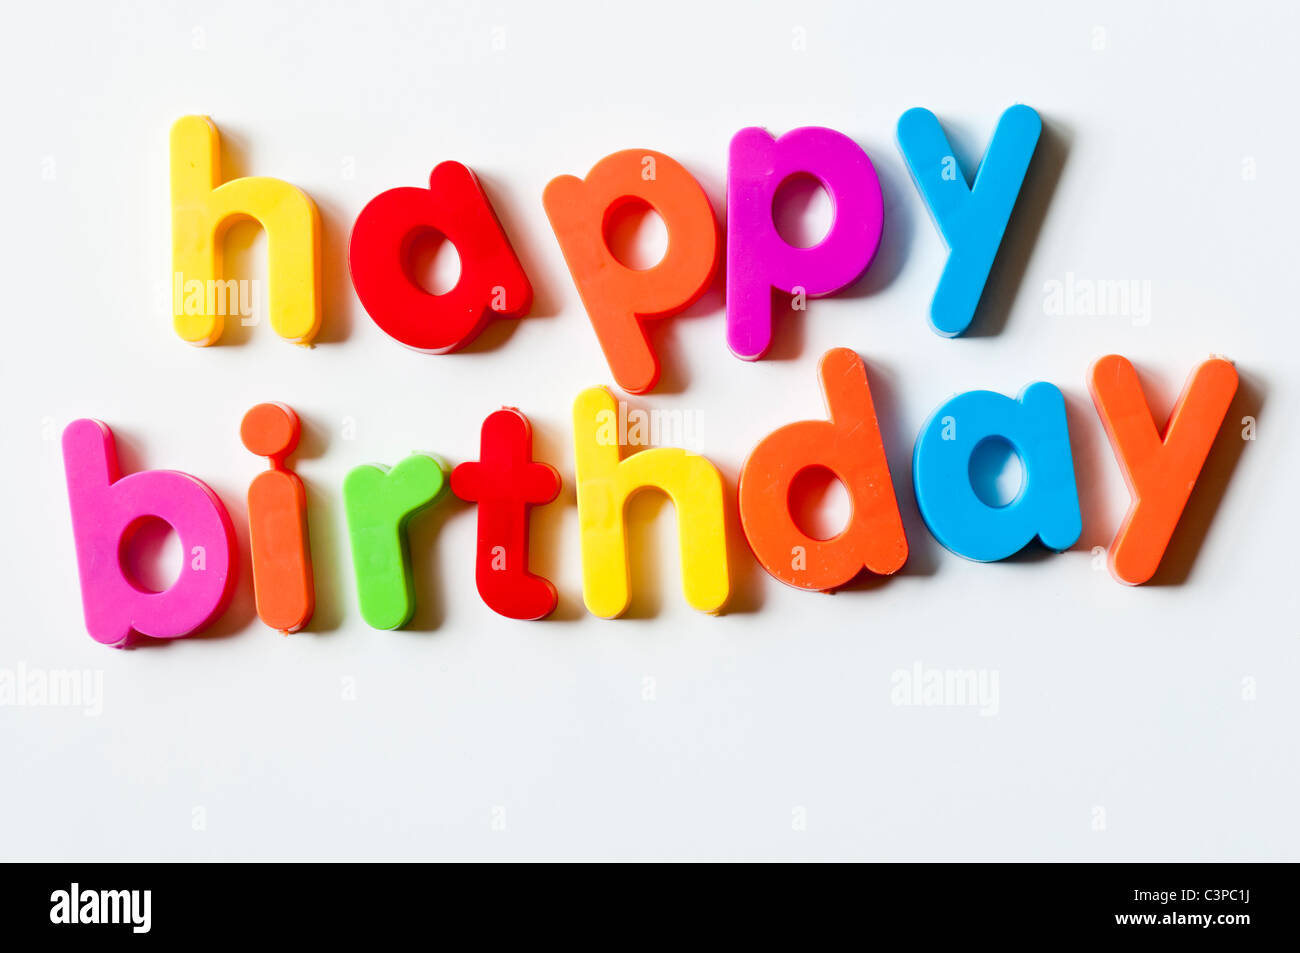 fridge magnets magnetic letters spelling out happy birthday